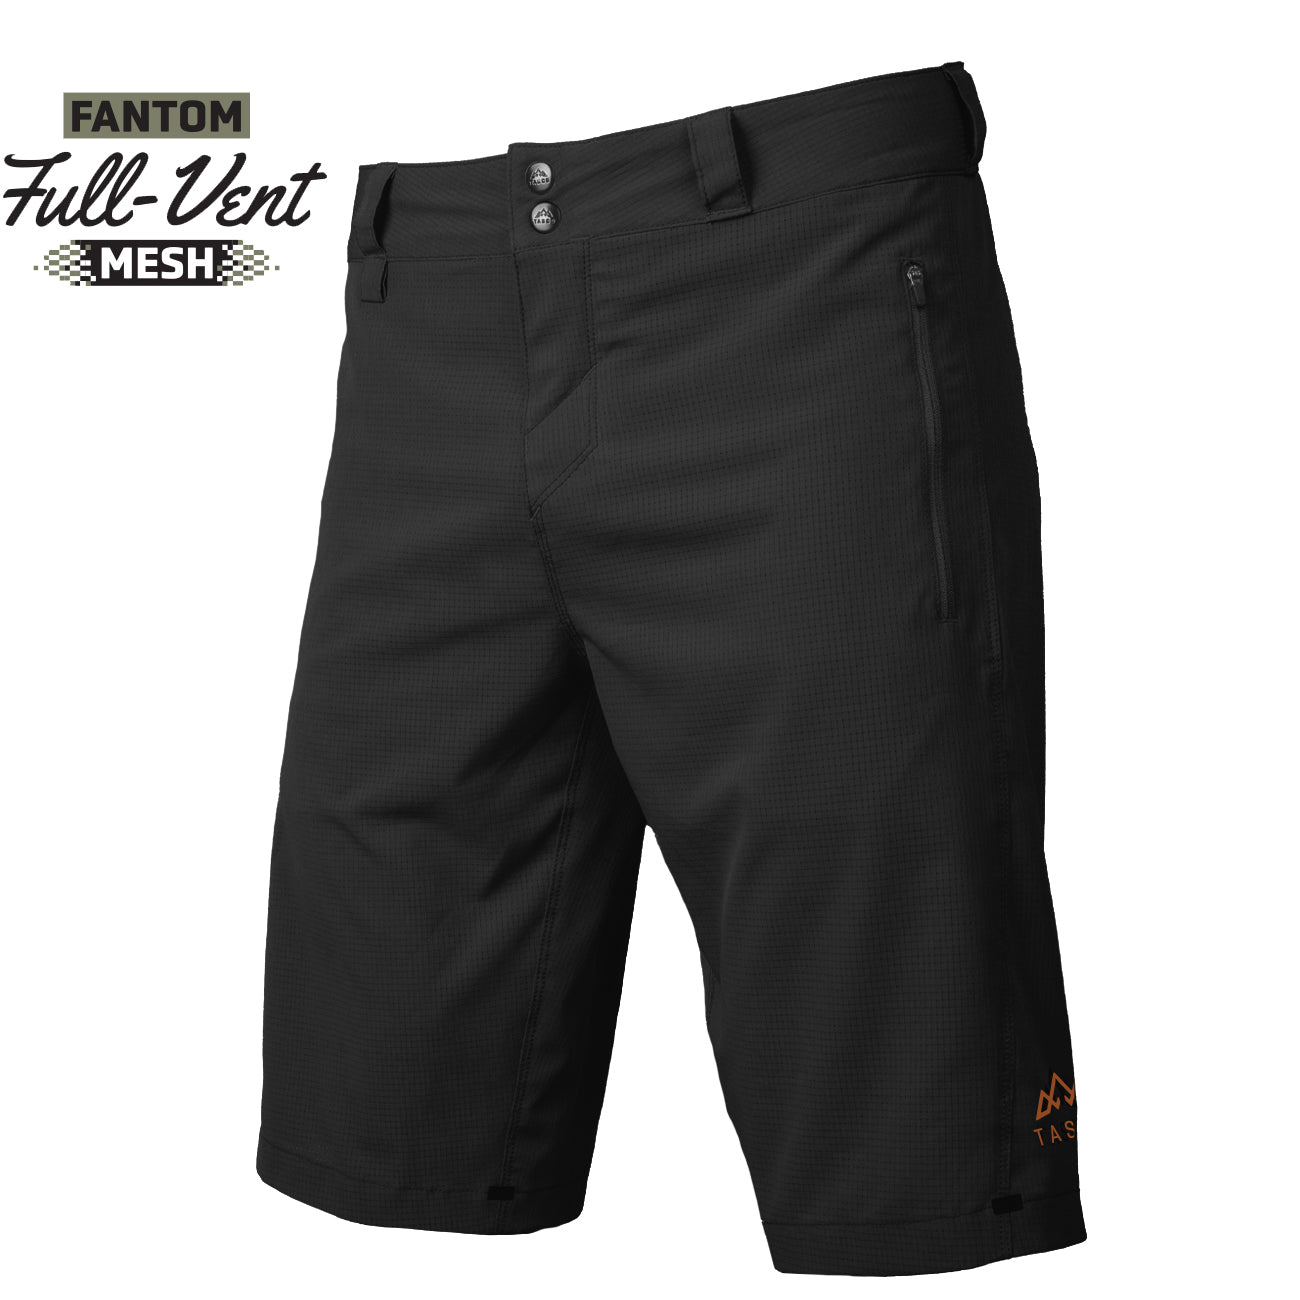 Scout Fantom MTB Shorts - Black